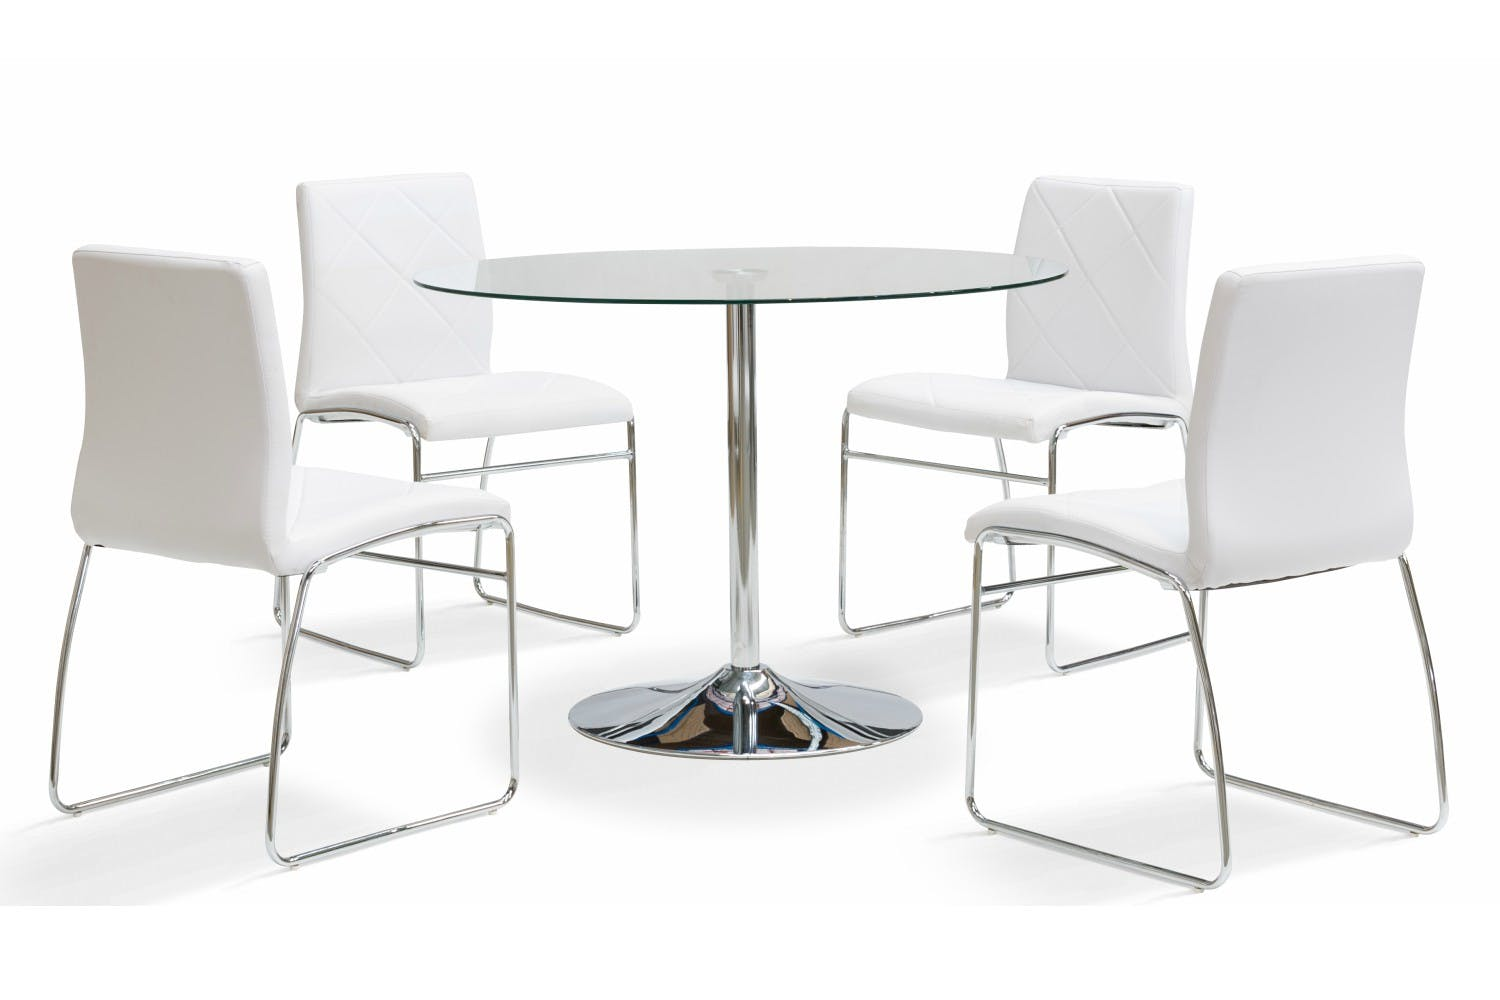 Oregon round glass dining table · oregon round glass dining table